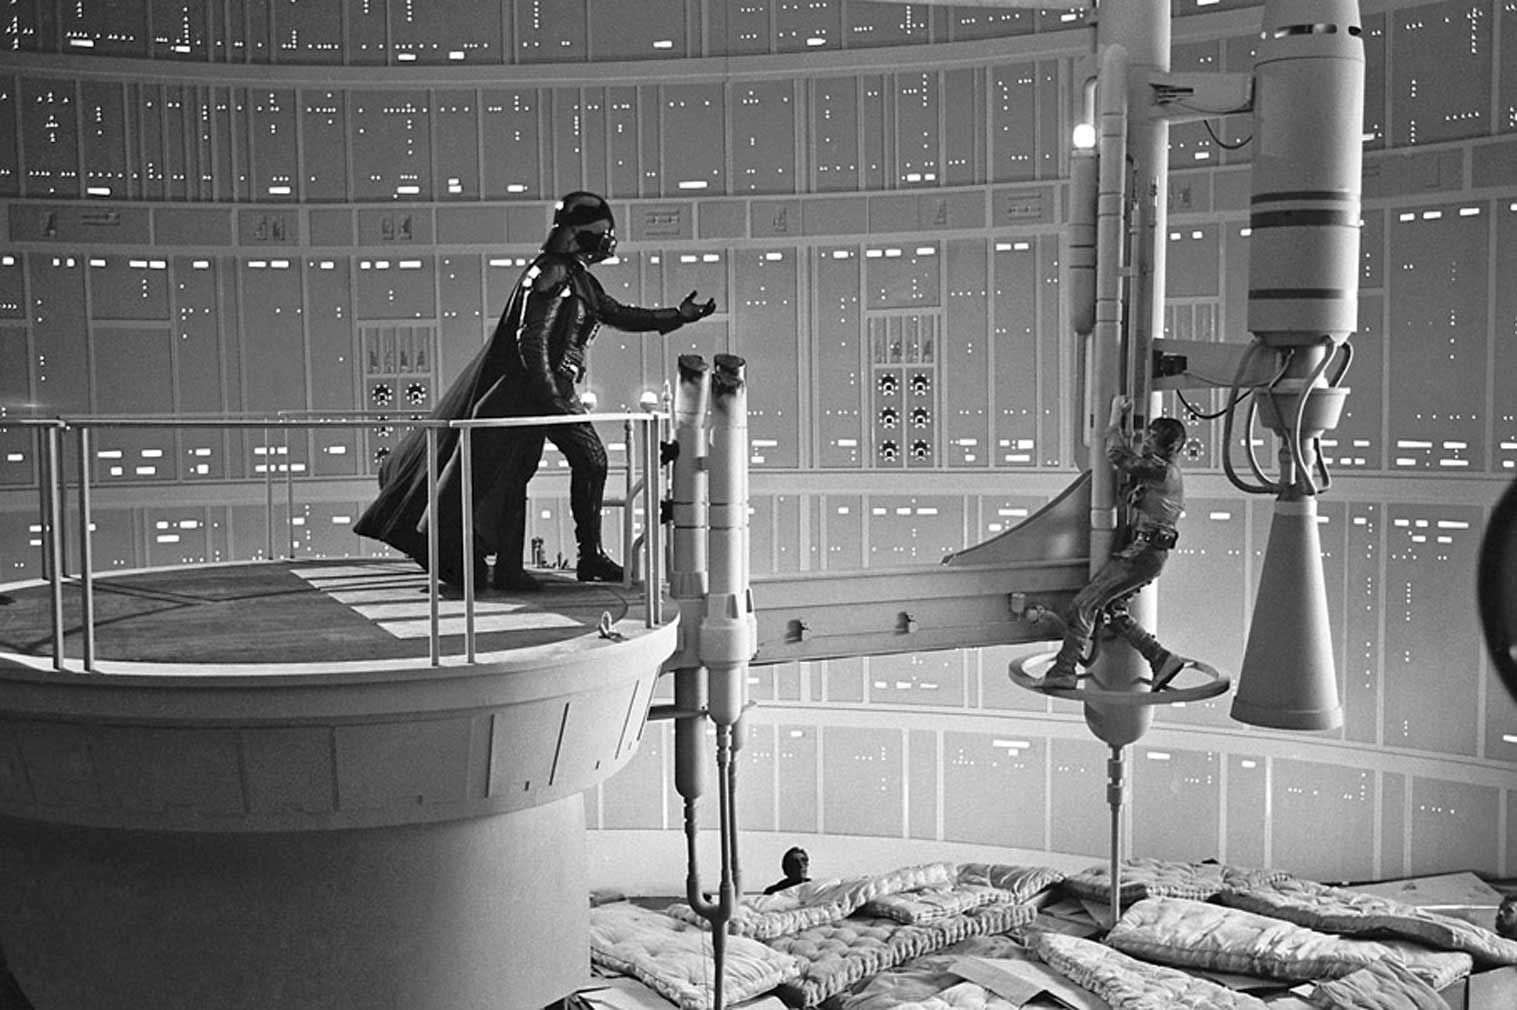 David Prowse and Mark Hamill filming the classic scene in The Empire Strikes Back above a bunch of mattresses and cardboard boxes.